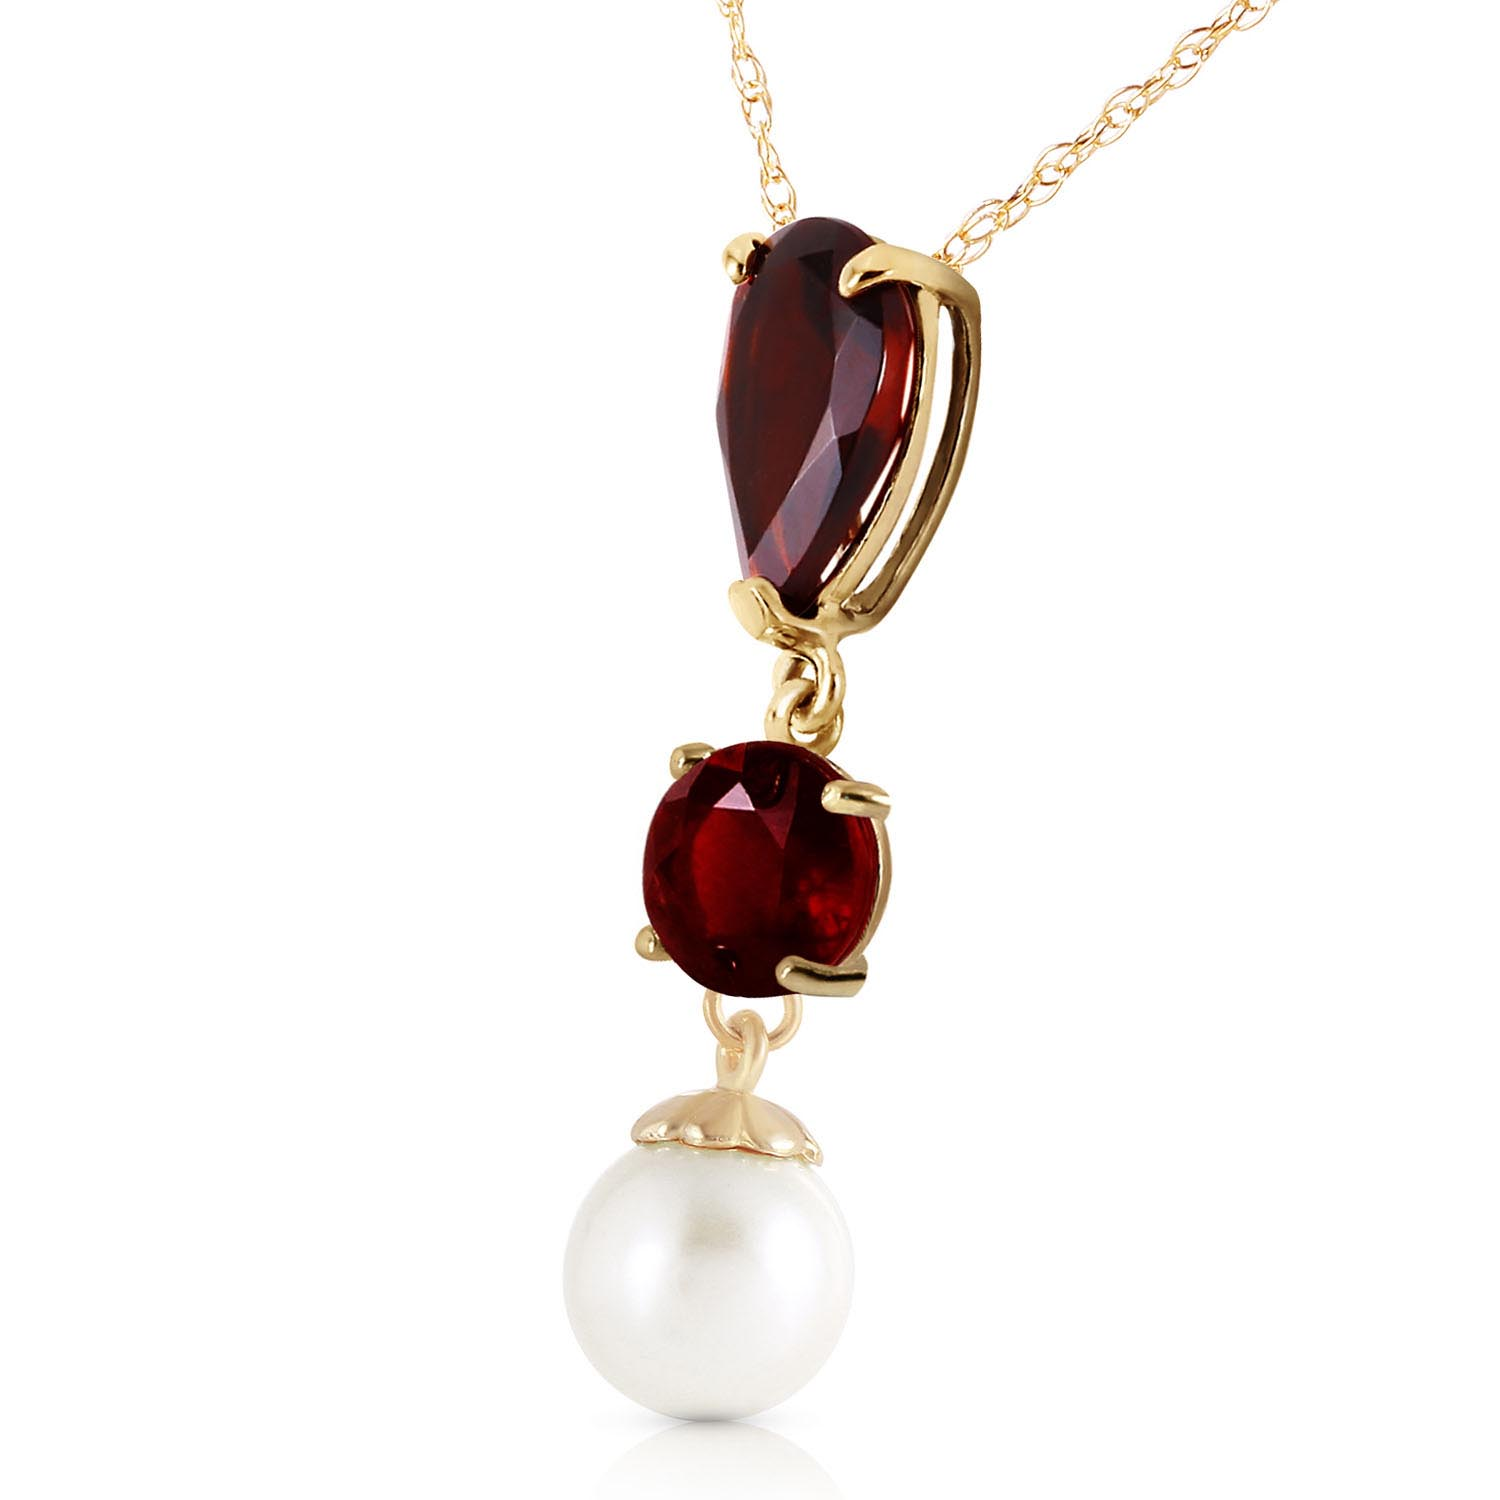 Garnet and Pearl Hourglass Pendant Necklace 5.25ctw in 9ct Gold